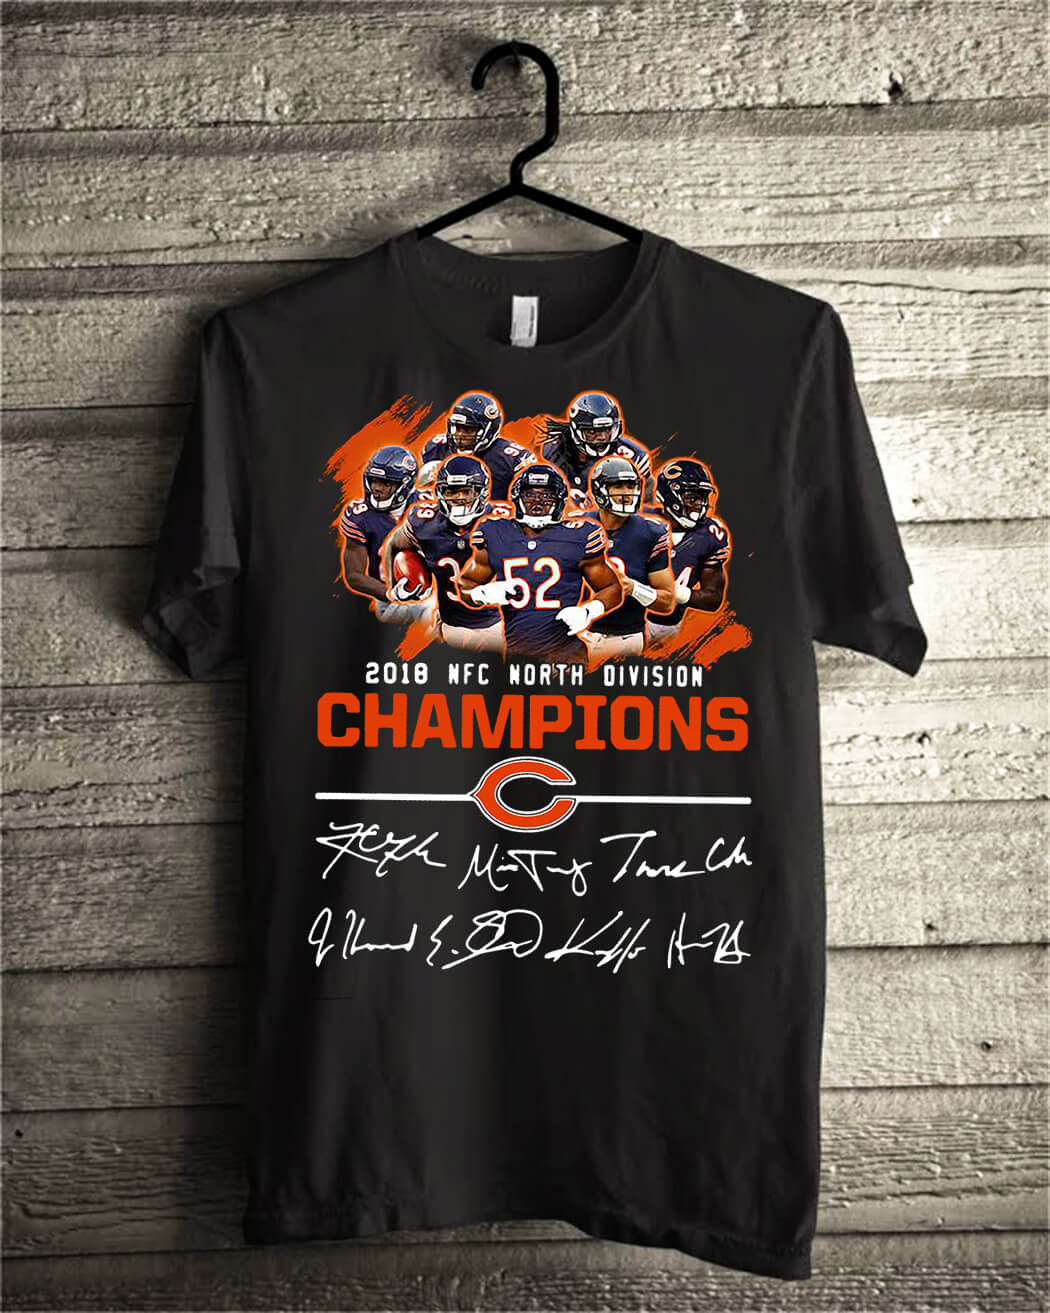 cb6d5f7aa77b4 Chicago Bears 2018 NFC north division Champions shirt